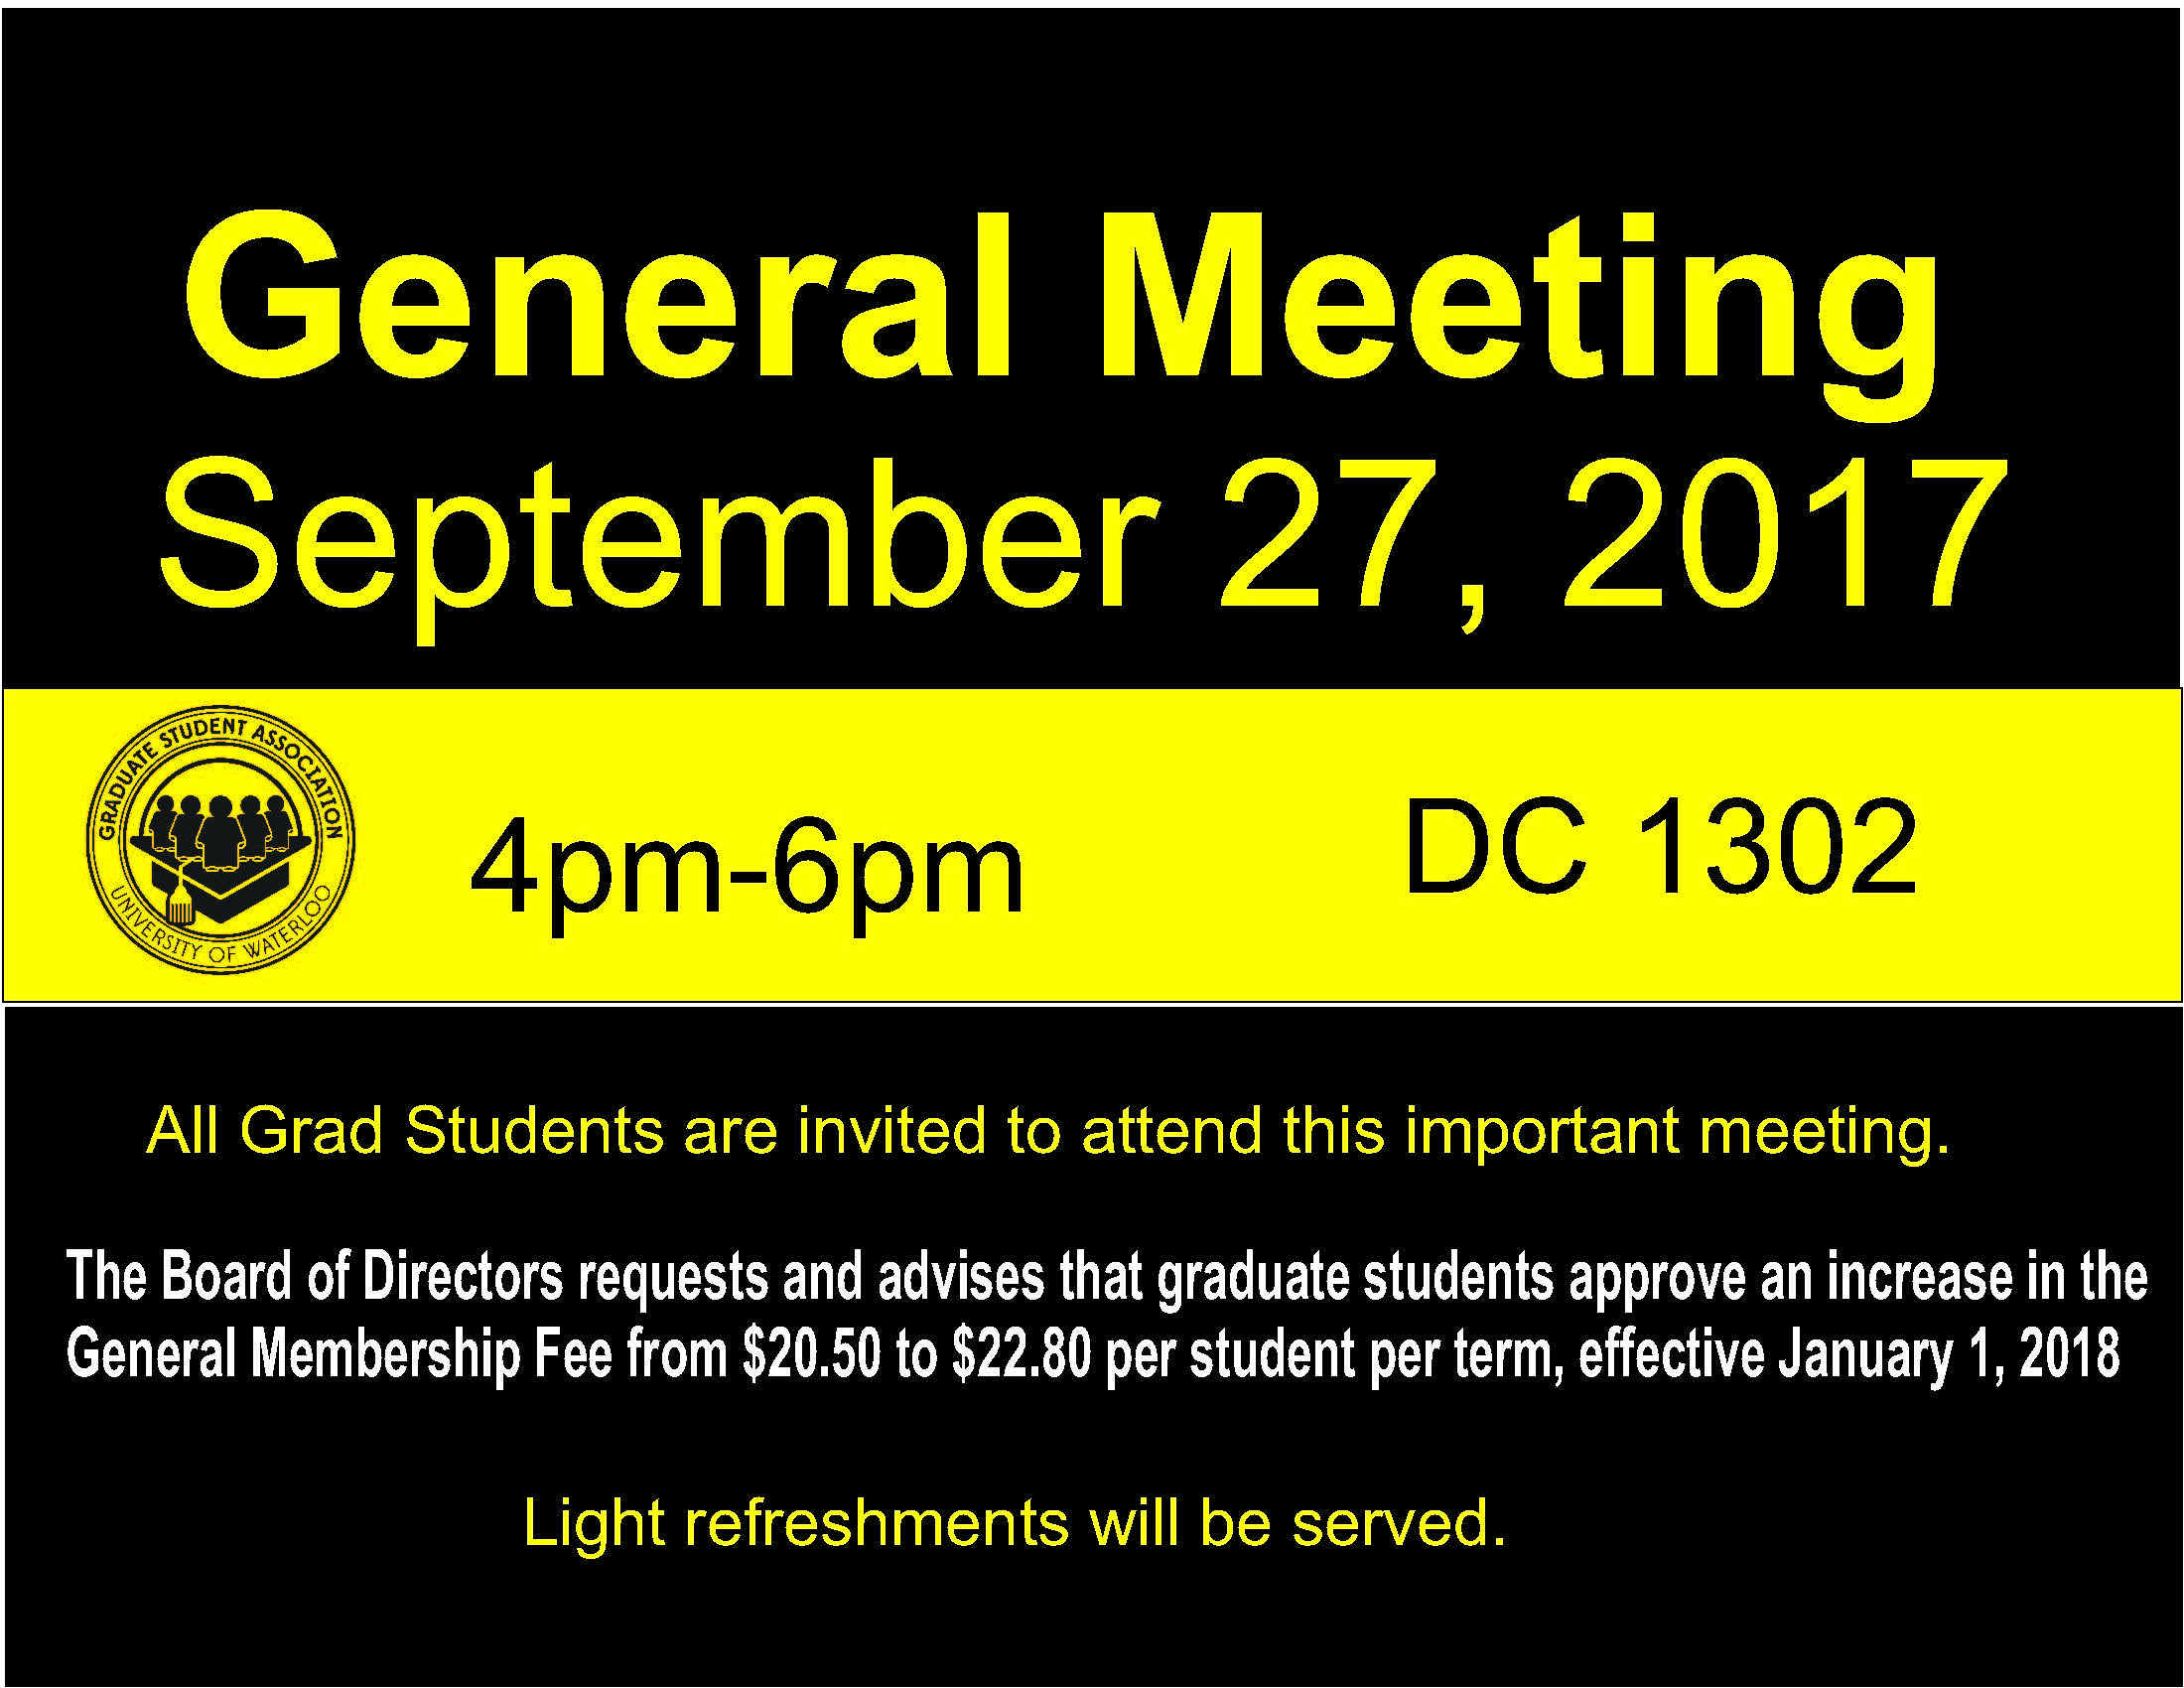 Poster for General Meeting